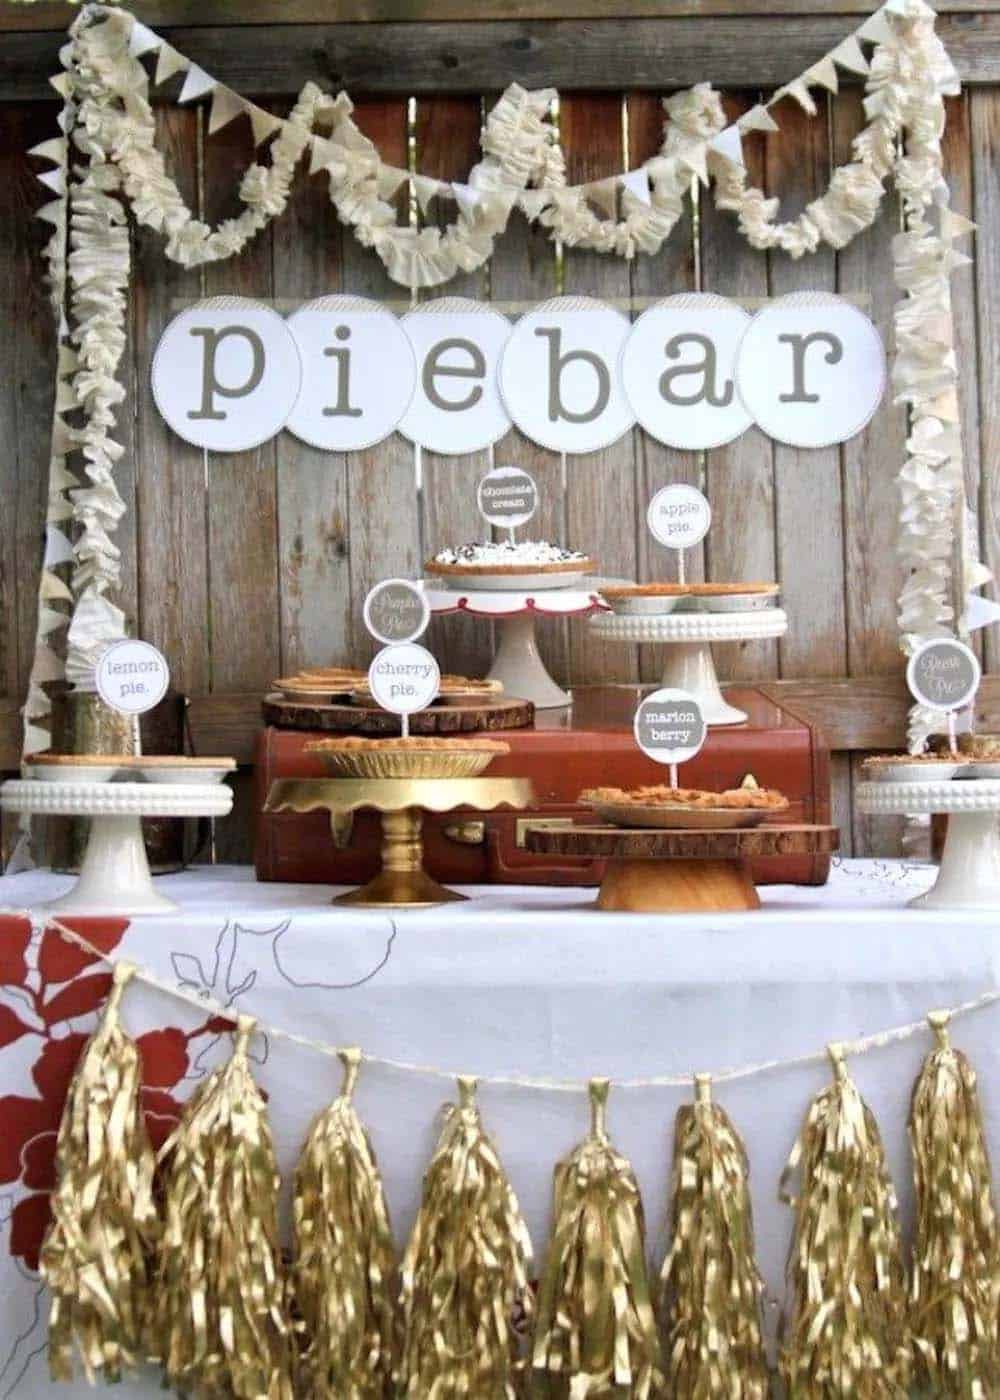 outdoor-pie-bar